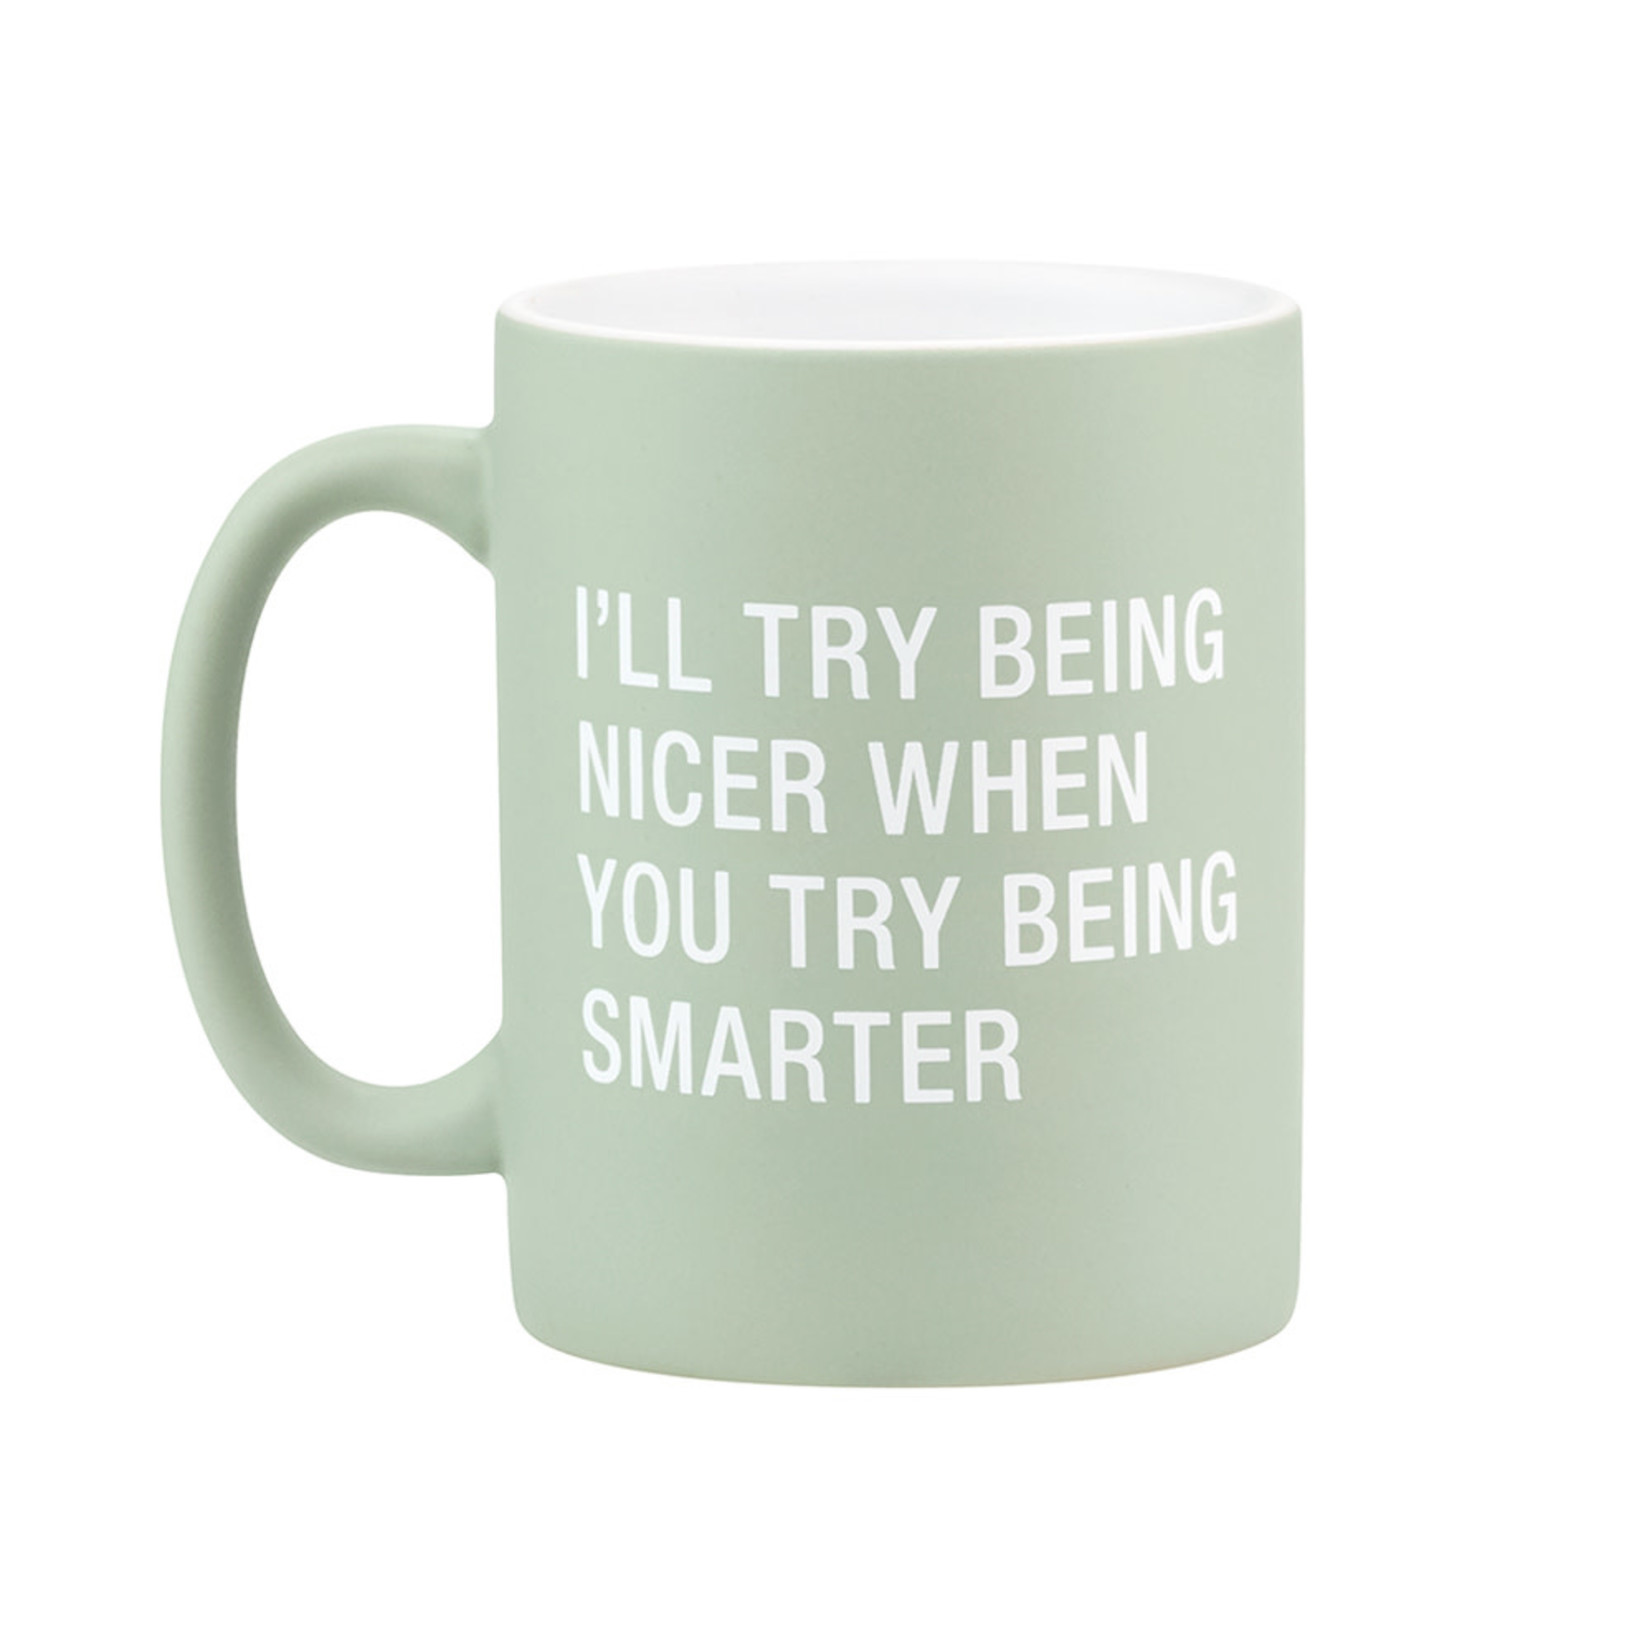 About Face Designs Inc About Face Designs 13.5oz Mug Being Smarter